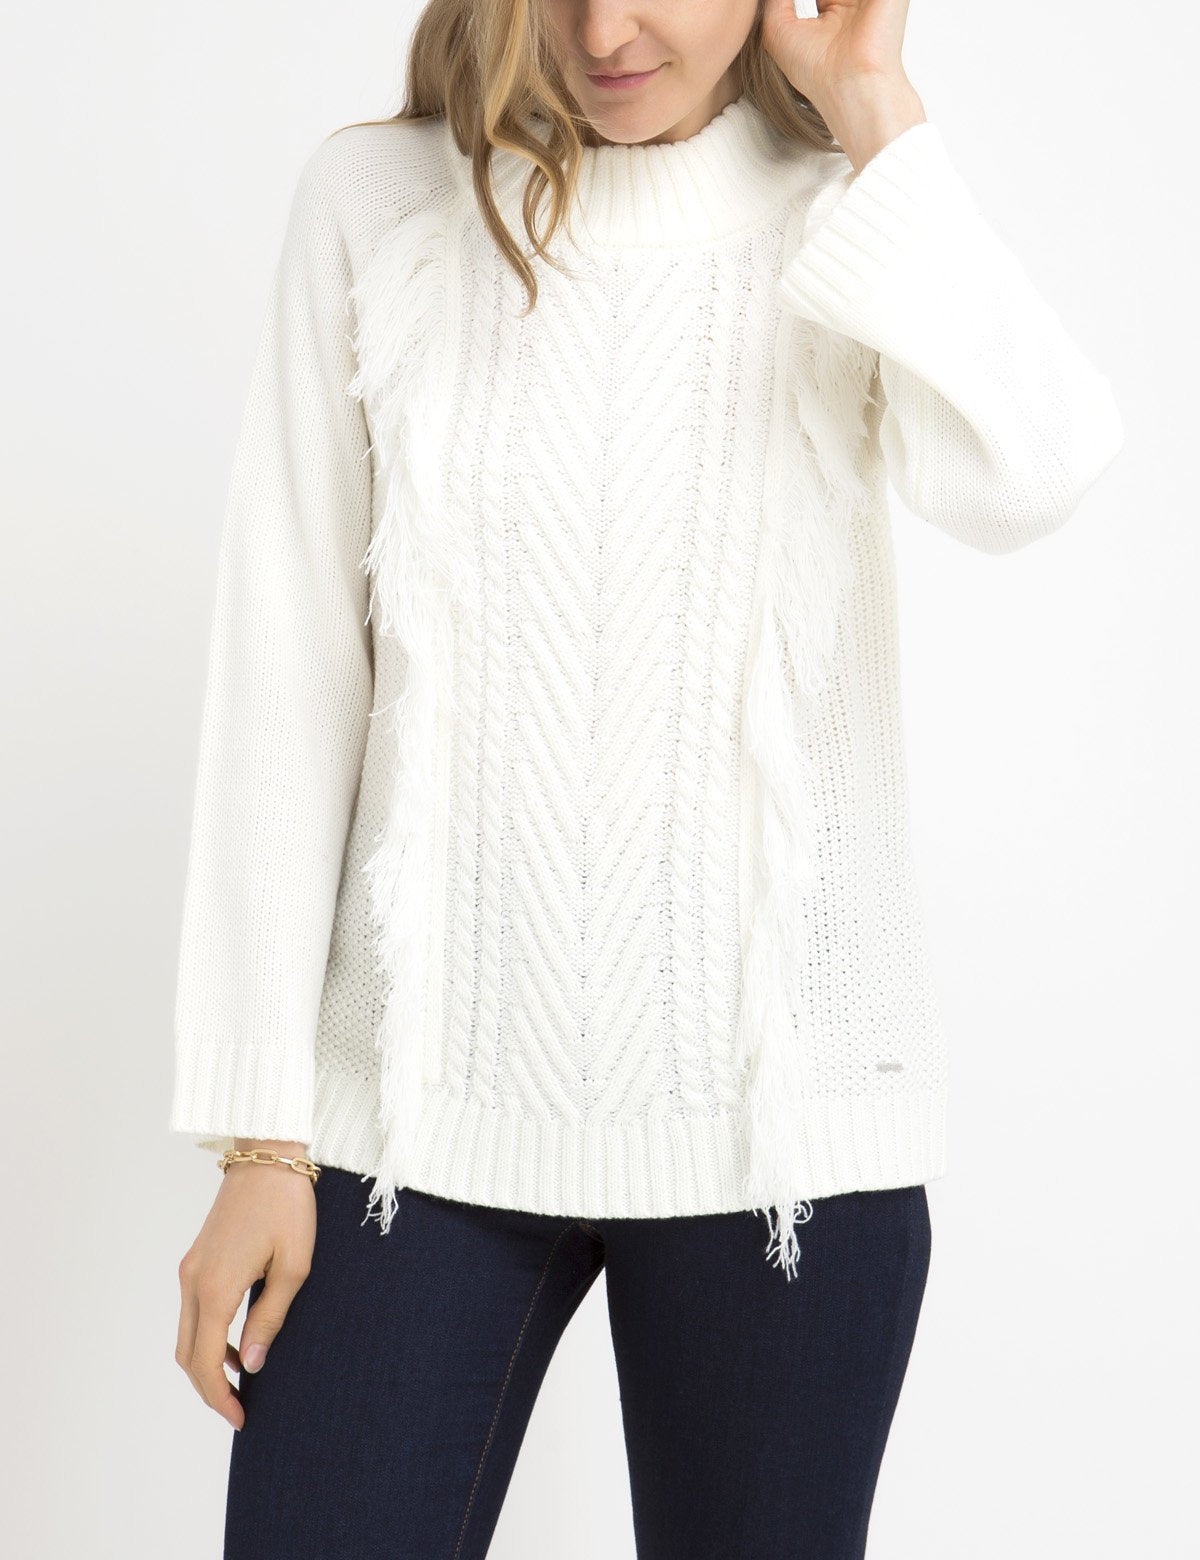 FRINGE MOCK NECK SWEATER - U.S. Polo Assn.